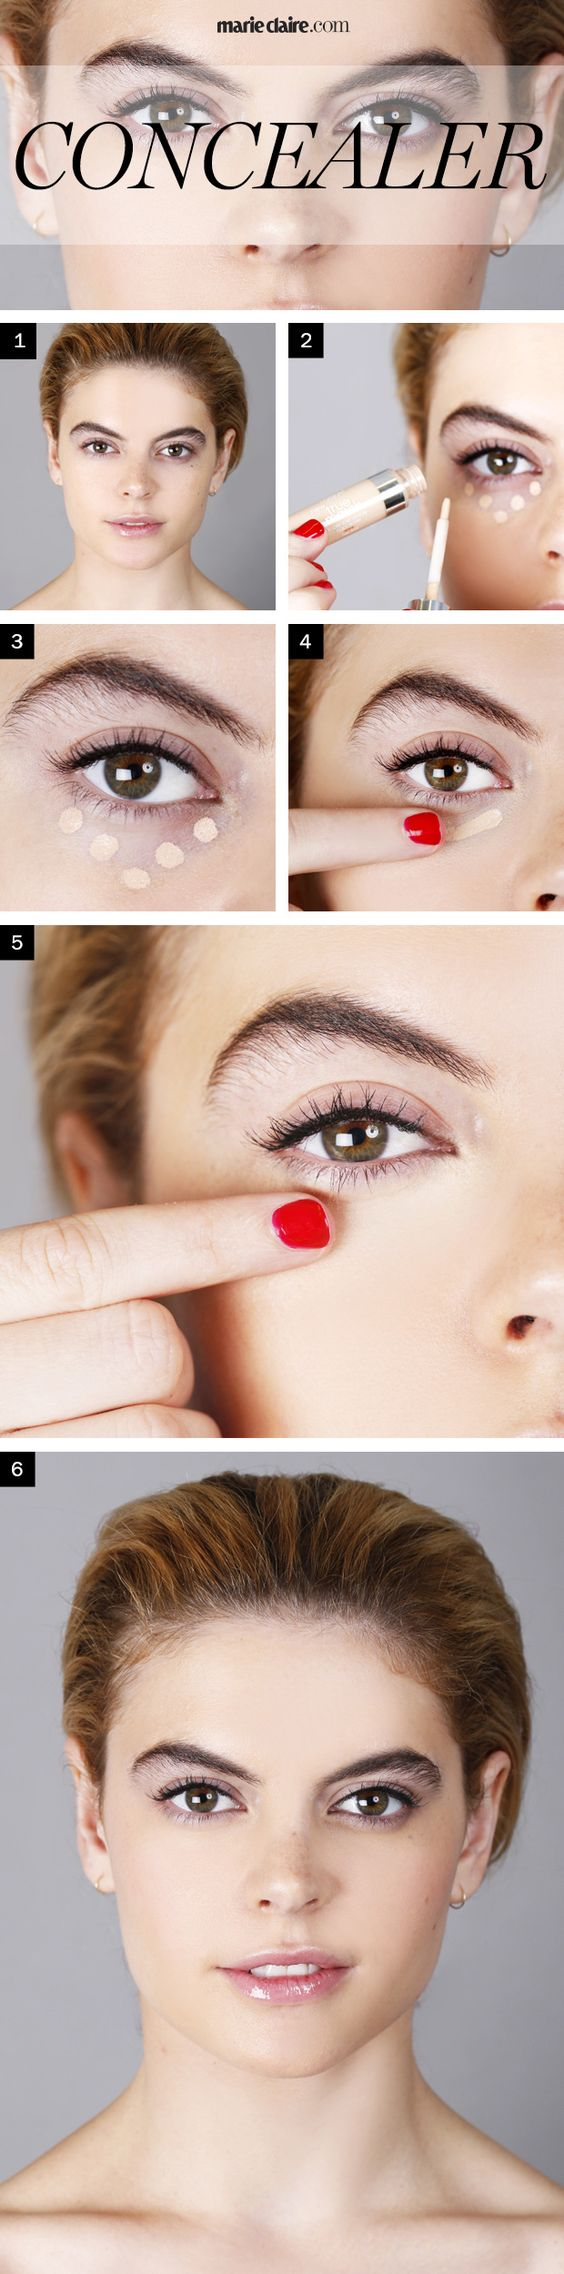 http://www.marieclaire.com/beauty/makeup/a10127/makeup-how-to-apply-concealer/?click=_srch_7